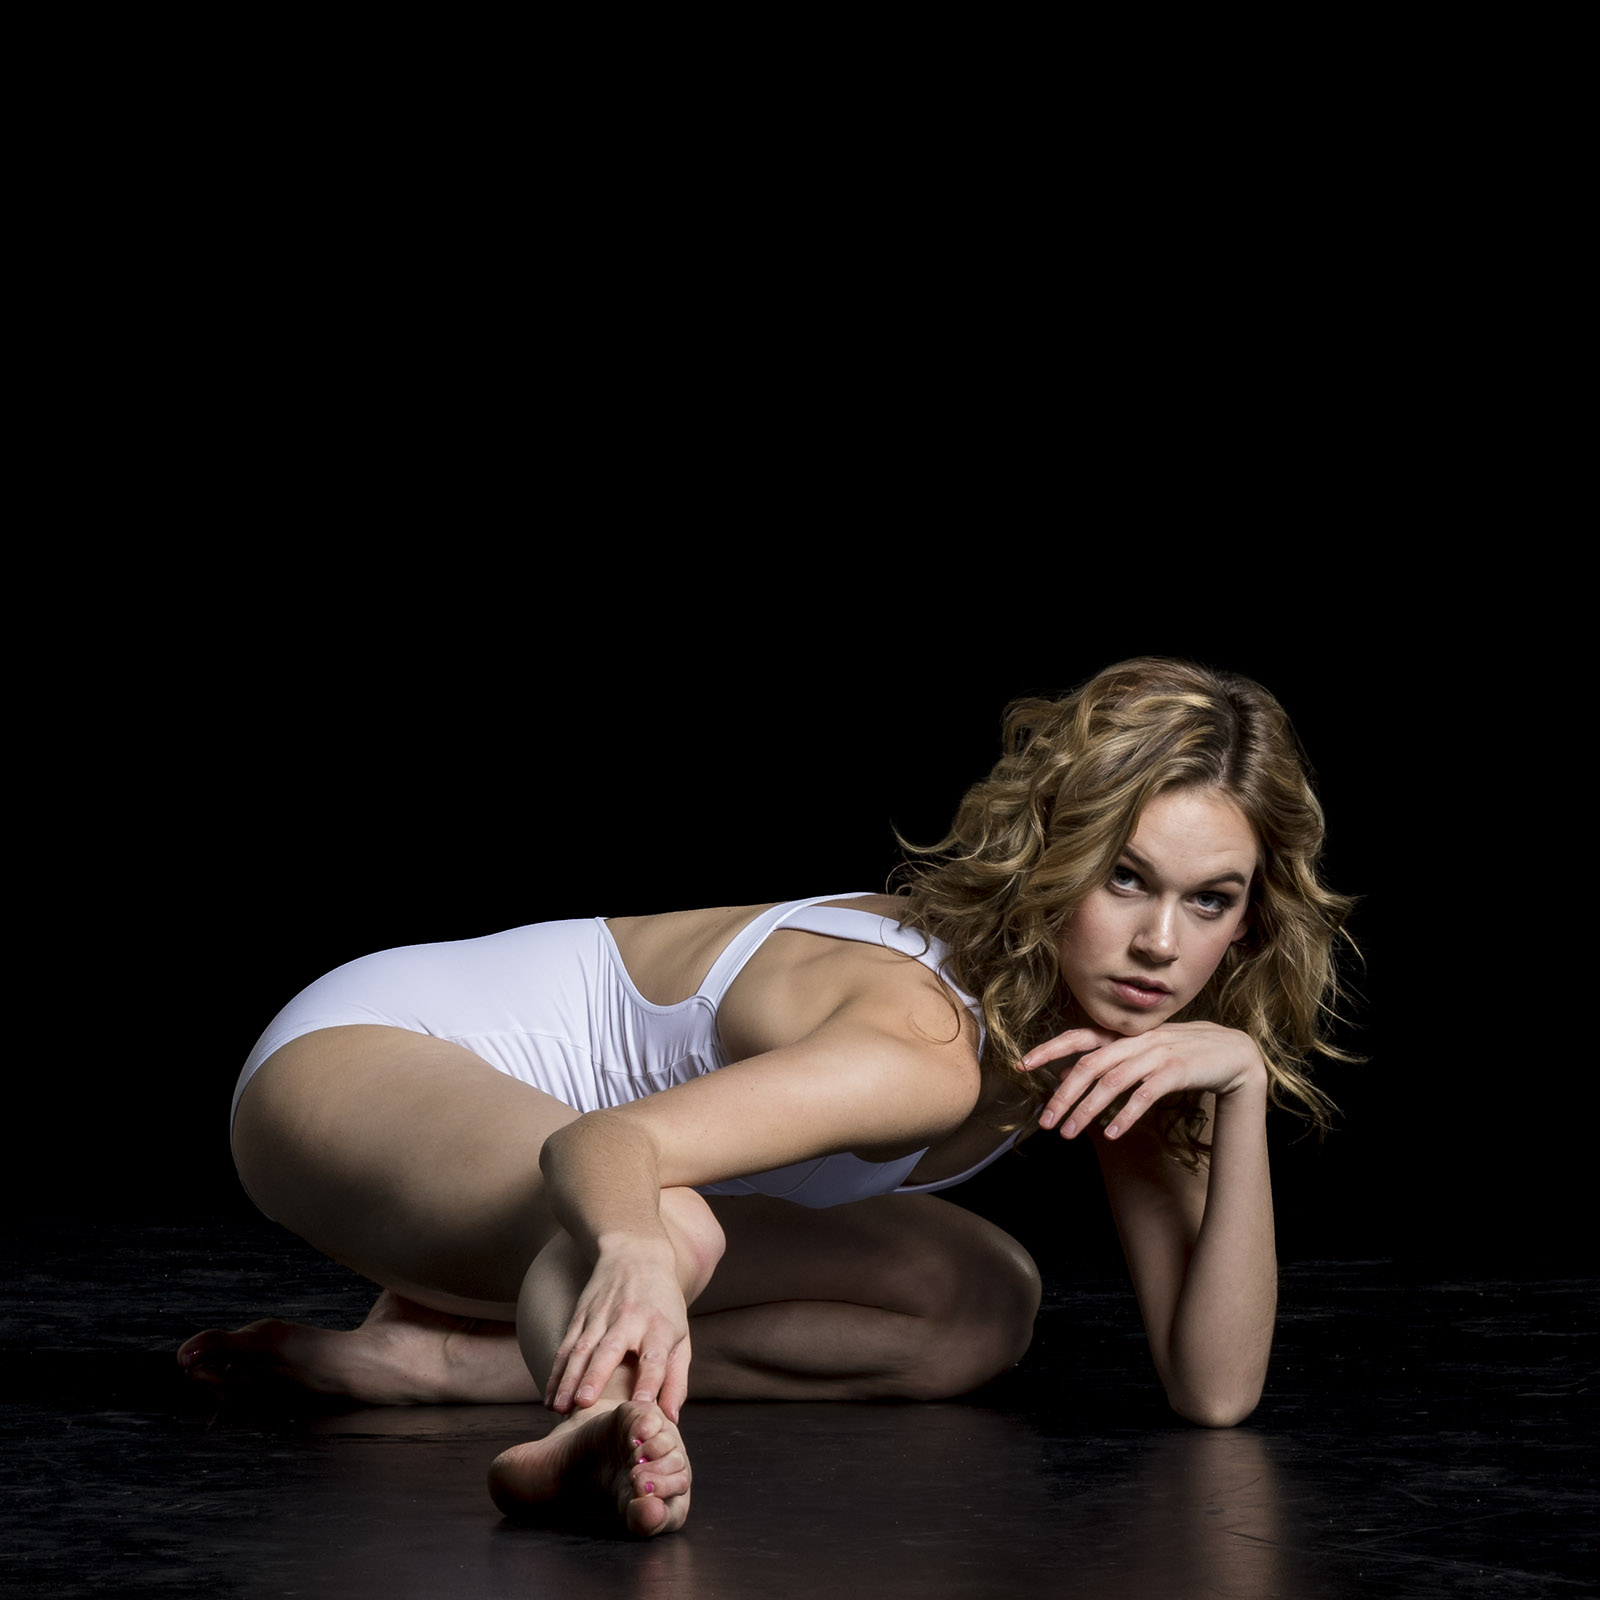 female-dancer-stretching-on-floor.jpg